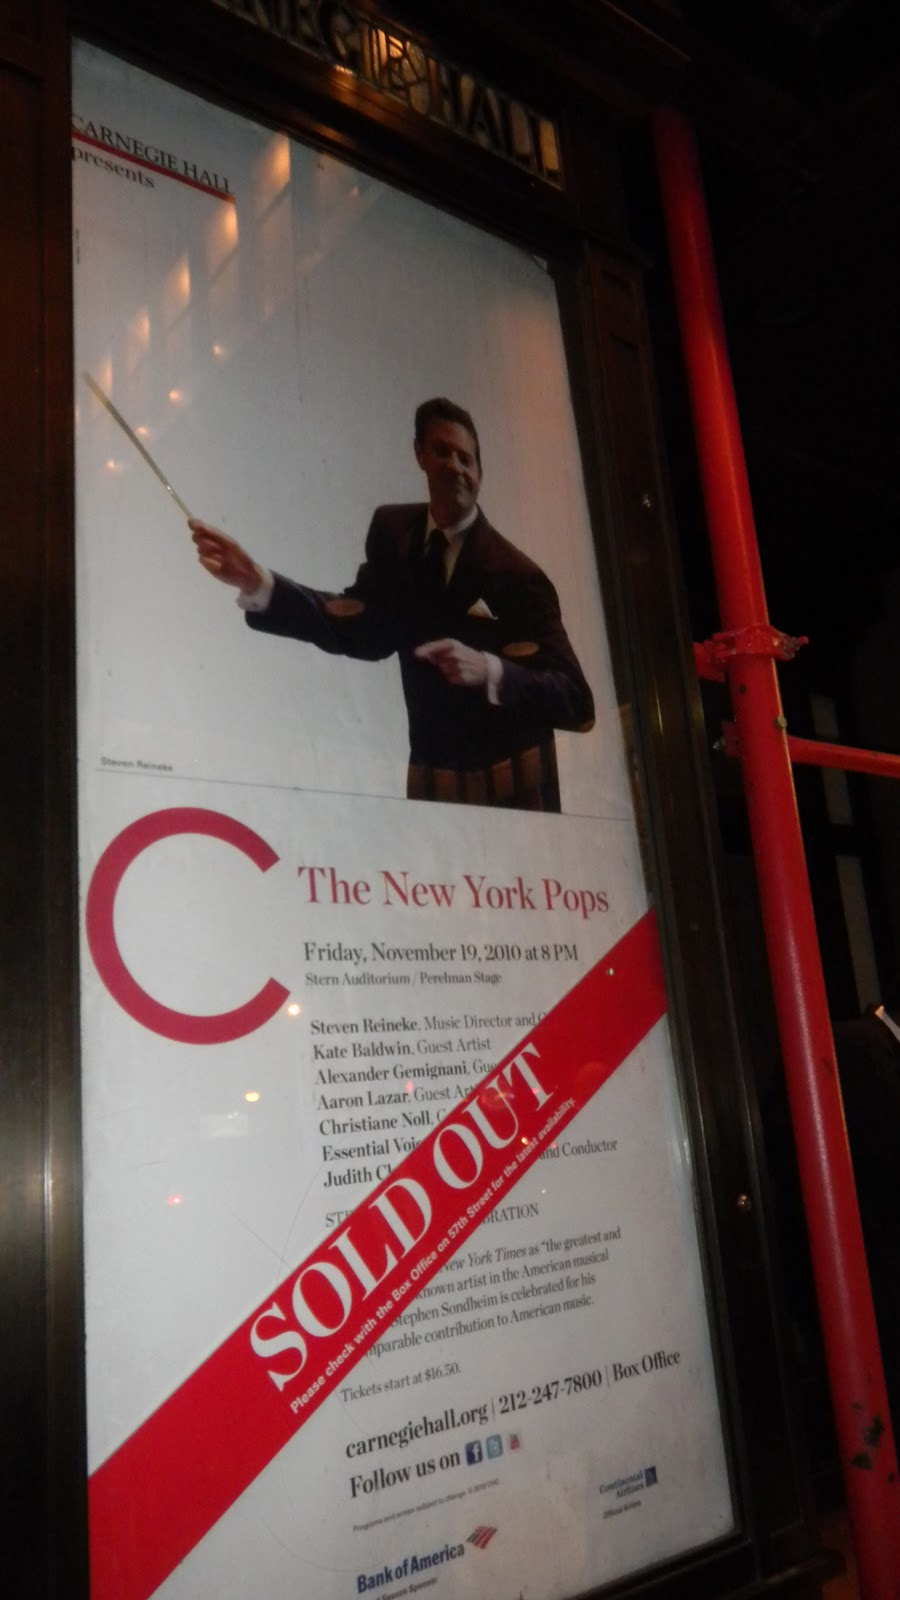 New York Pops Carnegie Hall Isaac Stern Auditorium